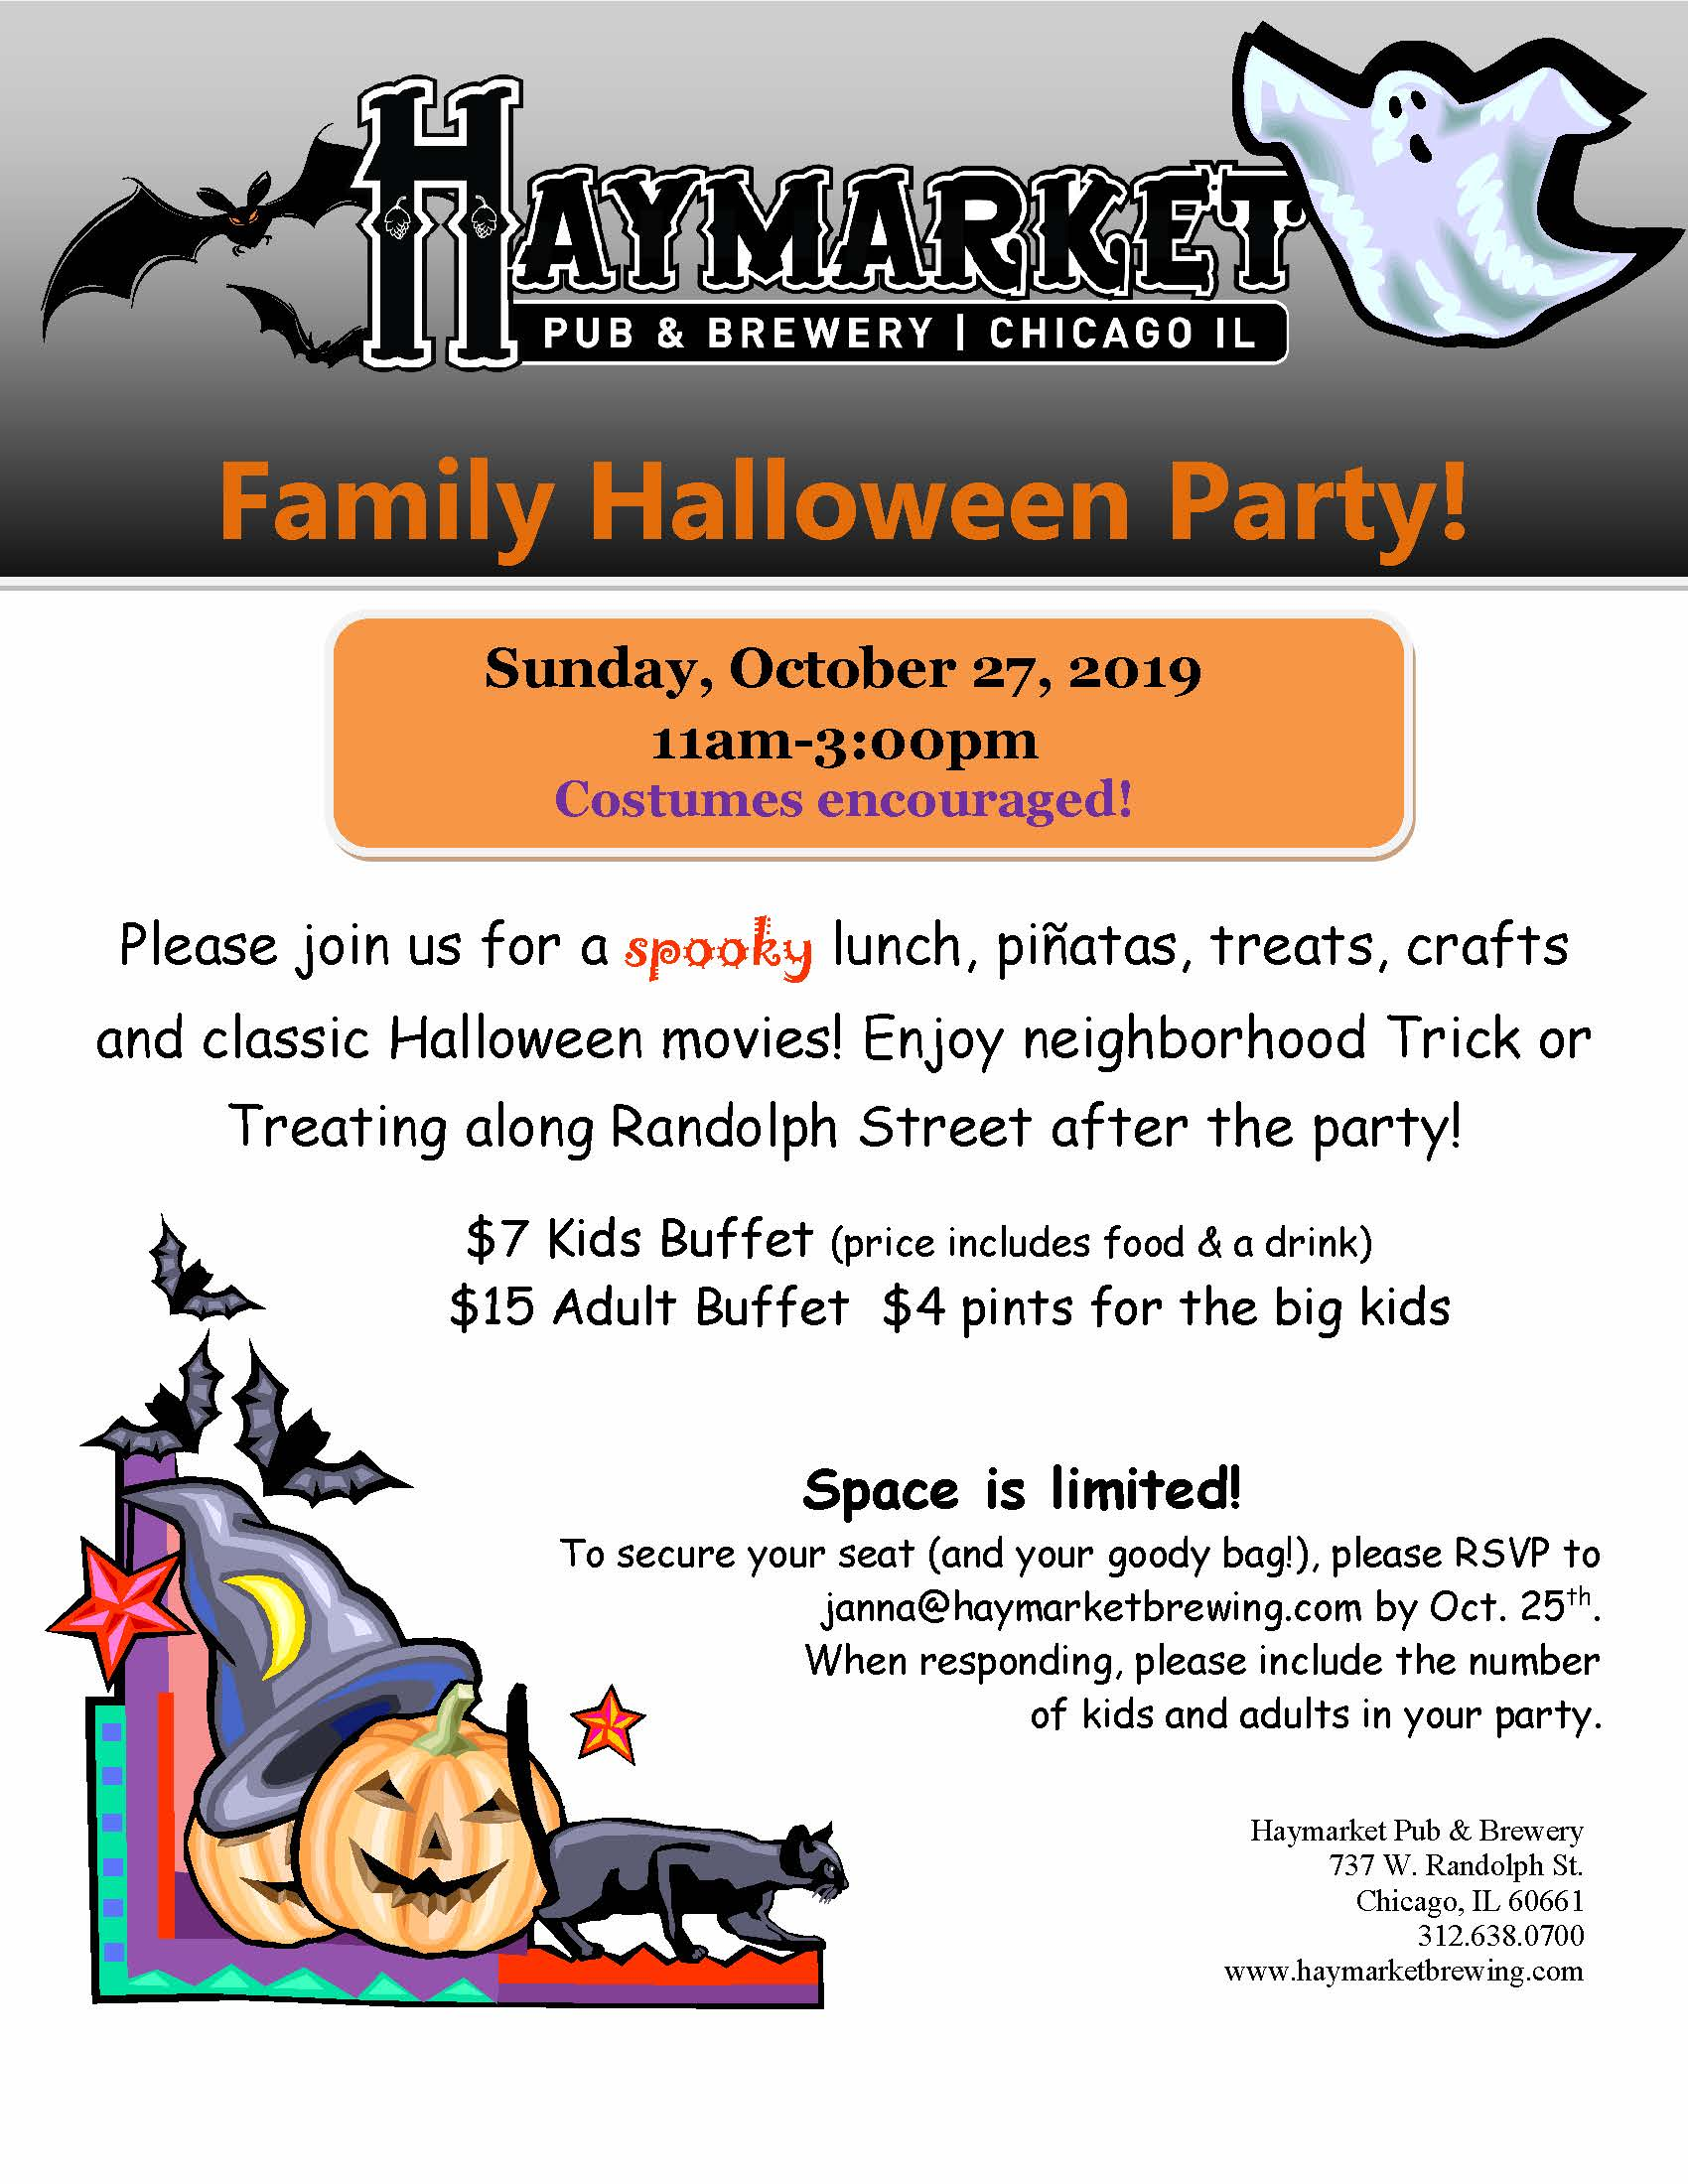 Family Halloween Party @ Haymarket Pub & Brewery